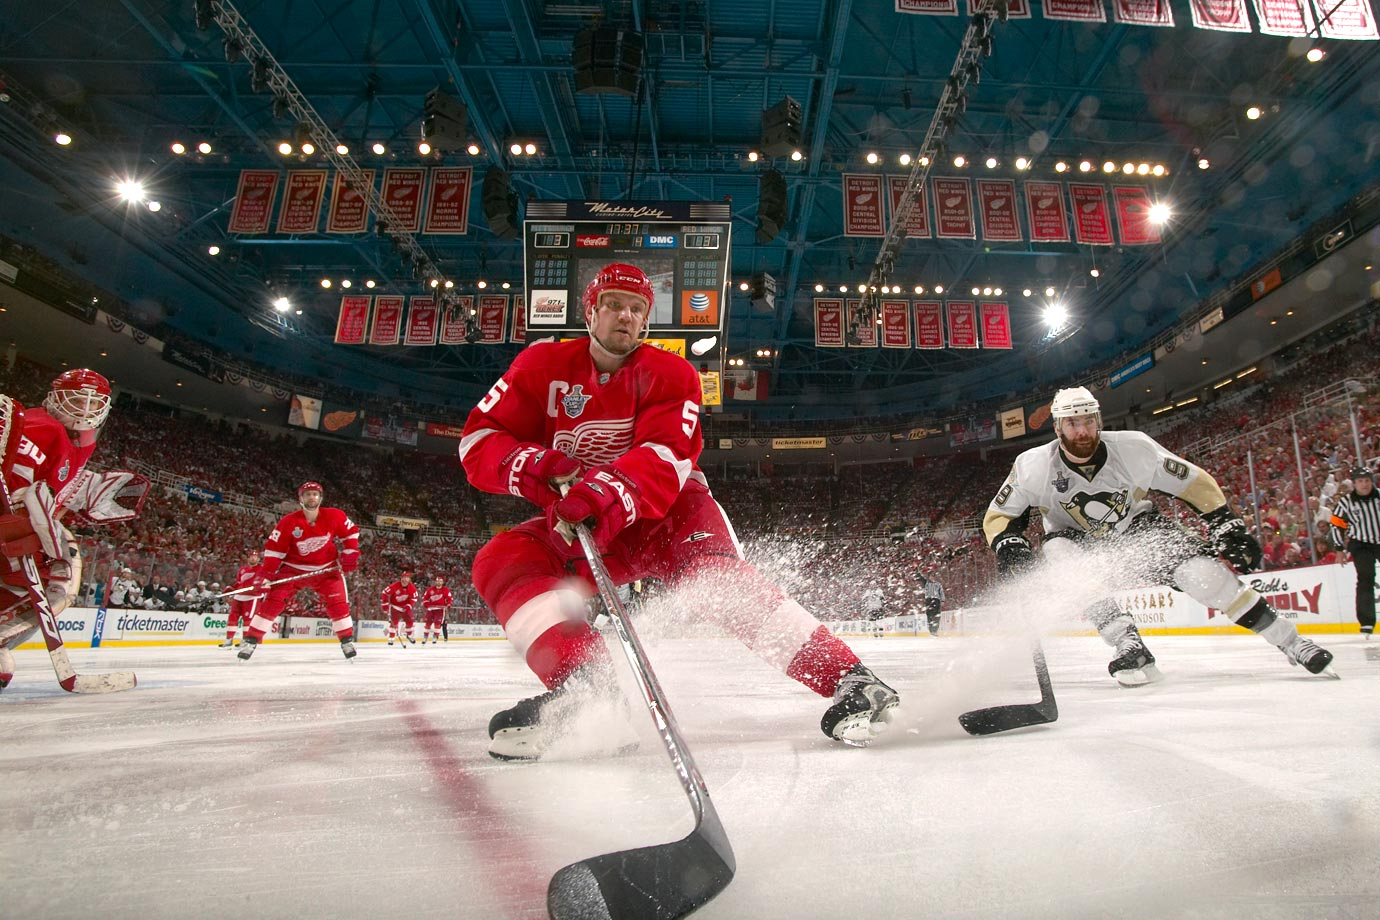 Holding a 3-1 series lead, defenseman Nicklas Lidstrom (center) and the Red Wings had a chance to put the Penguins away at home in Game 5, but a last-minute, tying goal by Pittsburgh winger Max Talbot pushed the game into overtime, where the Wings finally fell in a third extra session.